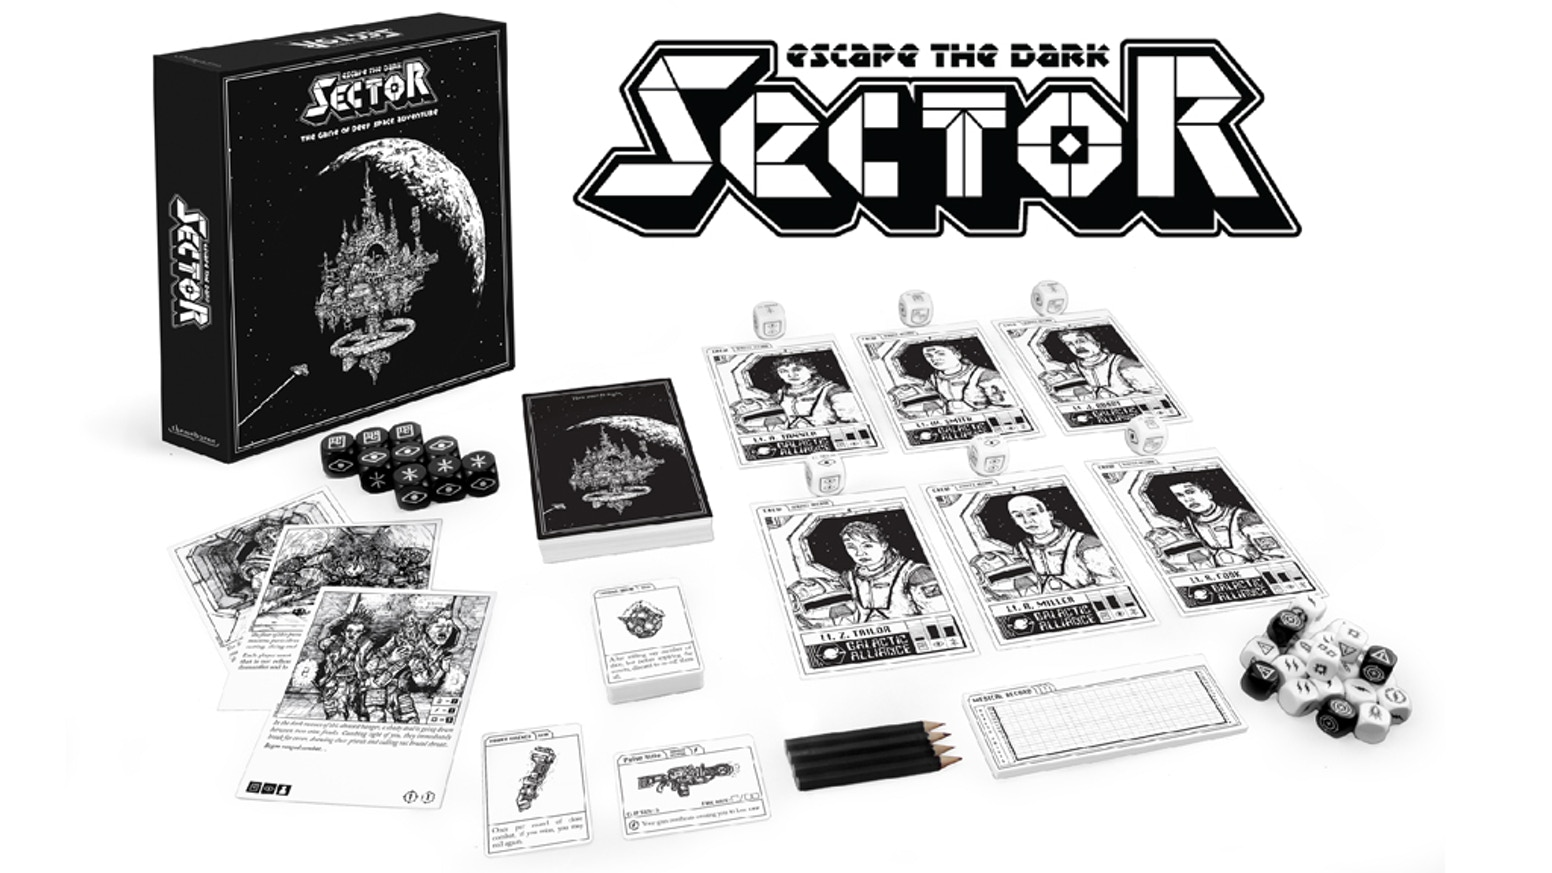 The atmospheric game of deep space adventure, for 1-4 players. Pre-orders are now open for delivery in September 2020!